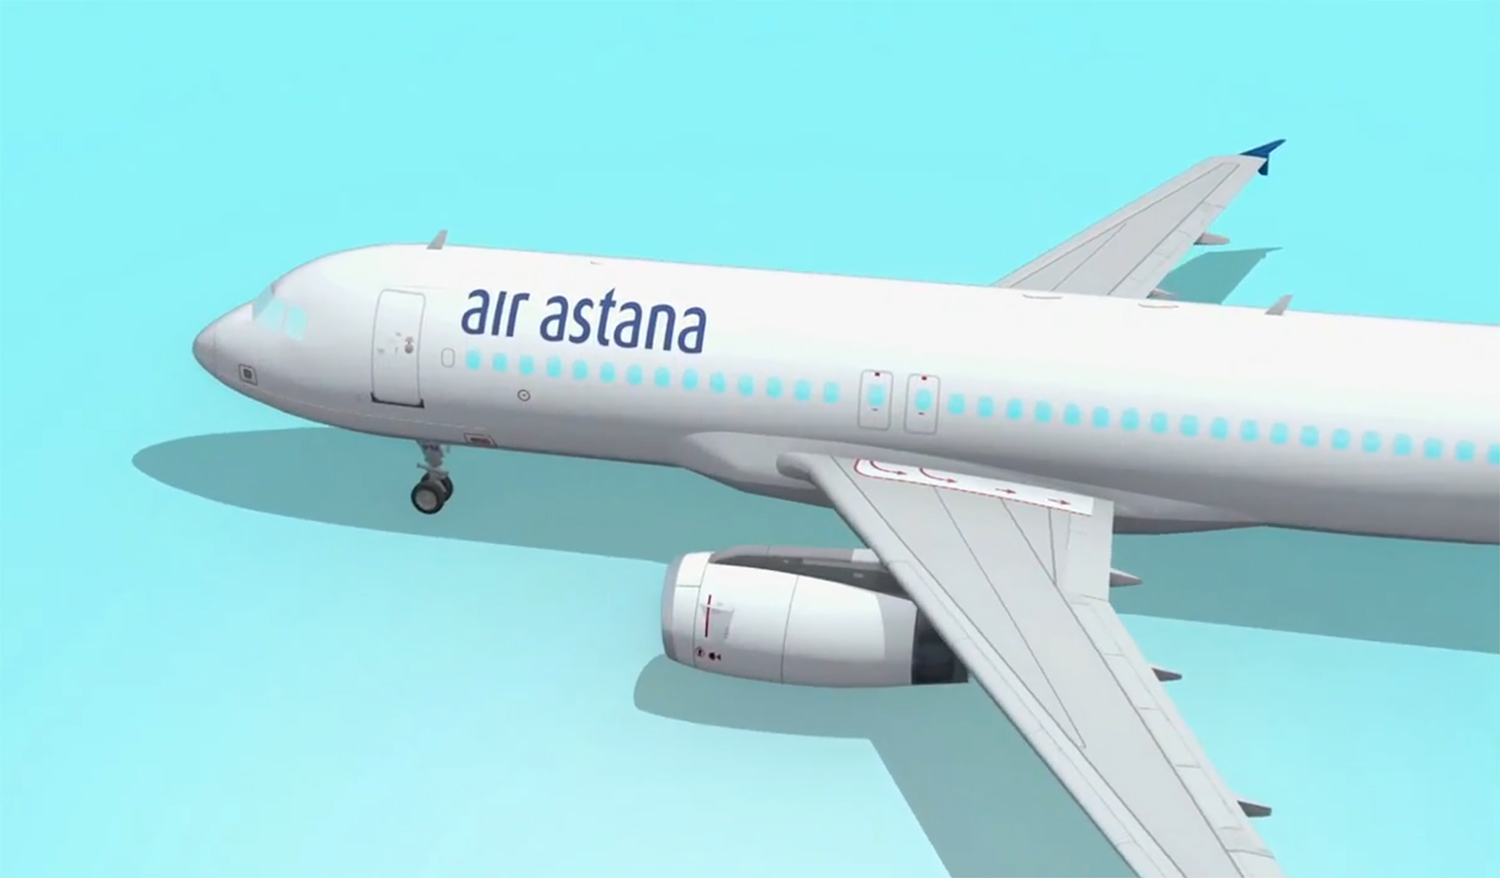 Air Astana welcomes you aboard. Safety video by FCB Almaty